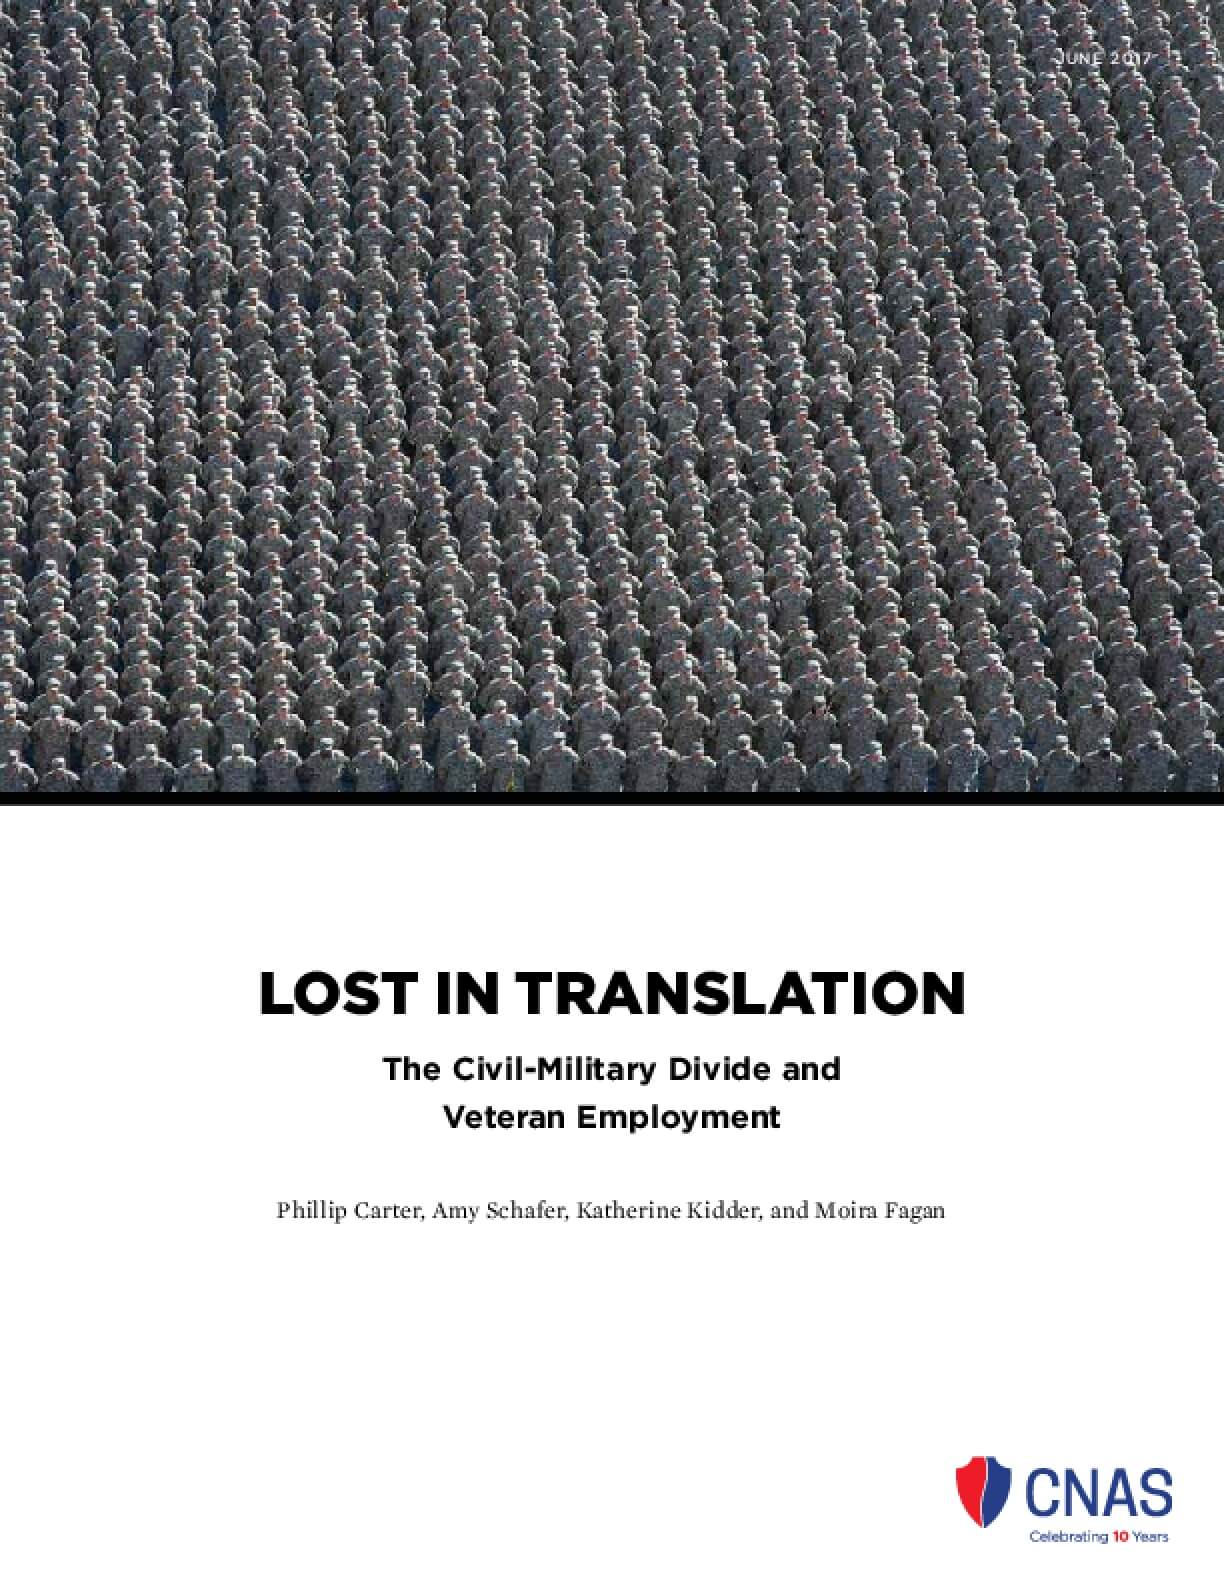 Lost in Translation: The Civil-Military Divide and Veteran Employment